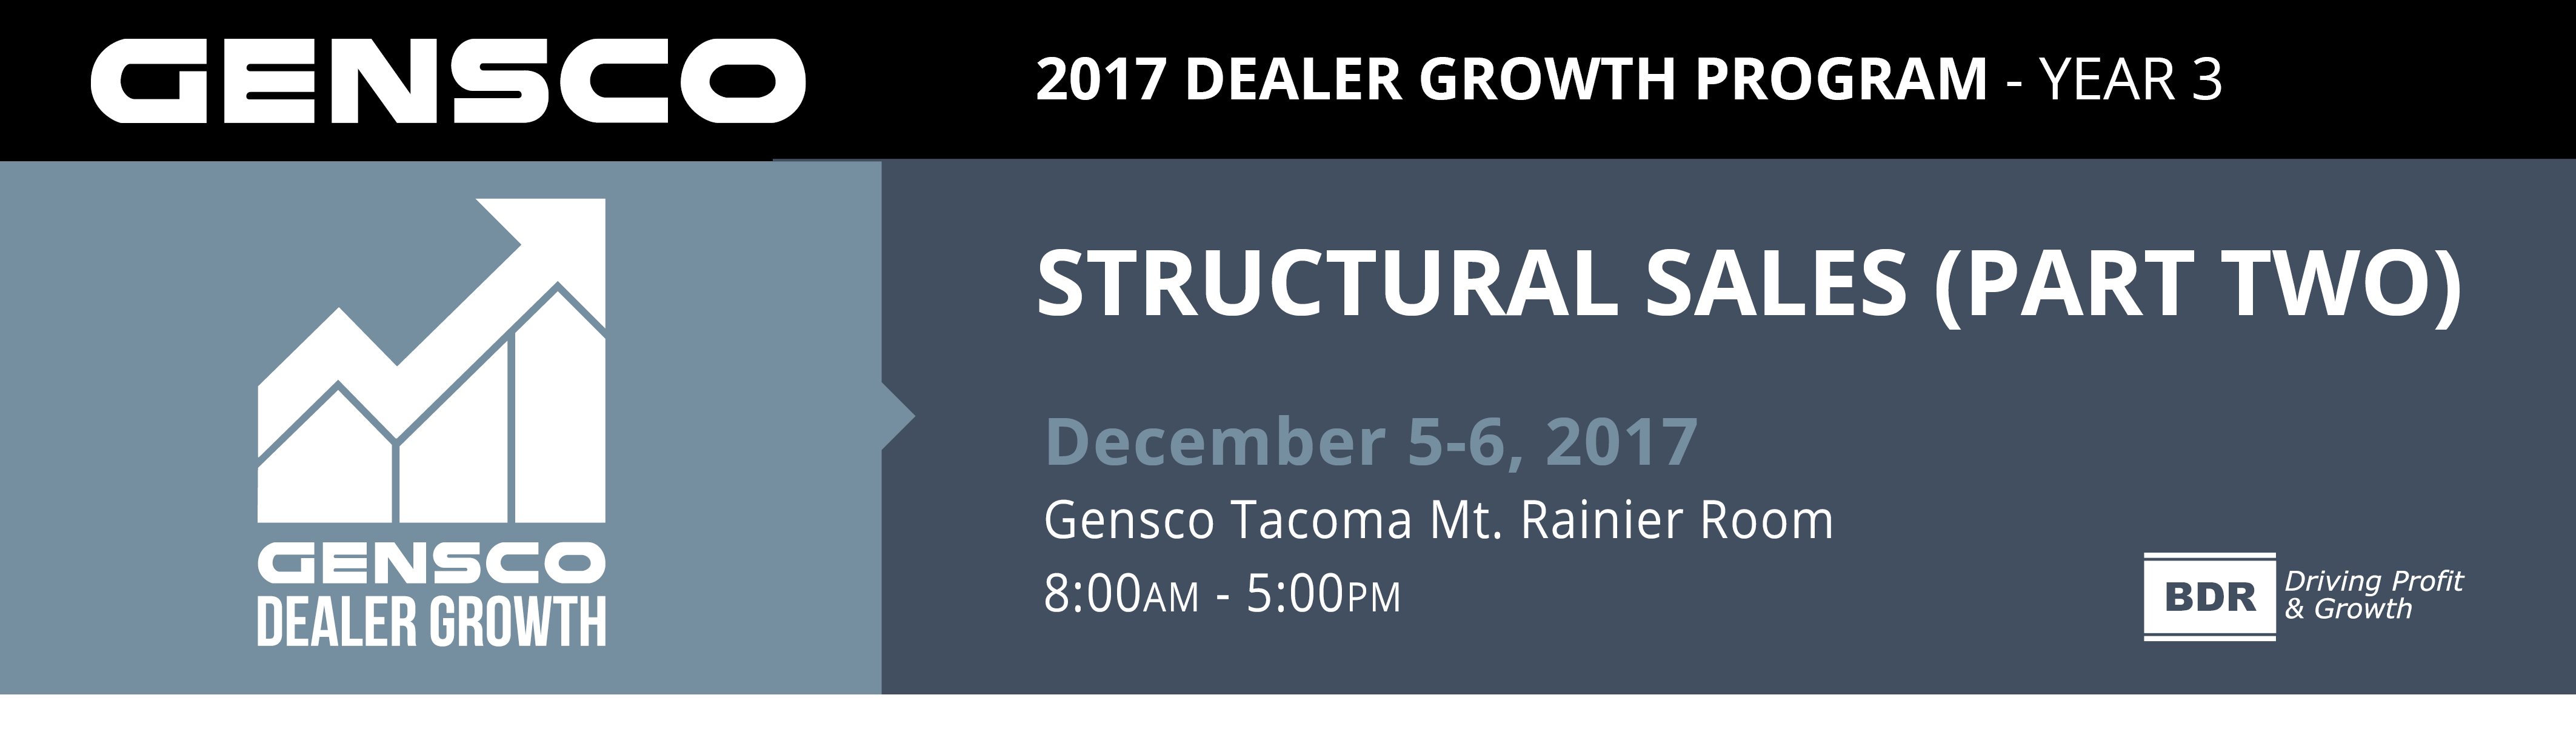 2017 Dealer Growth Headers10